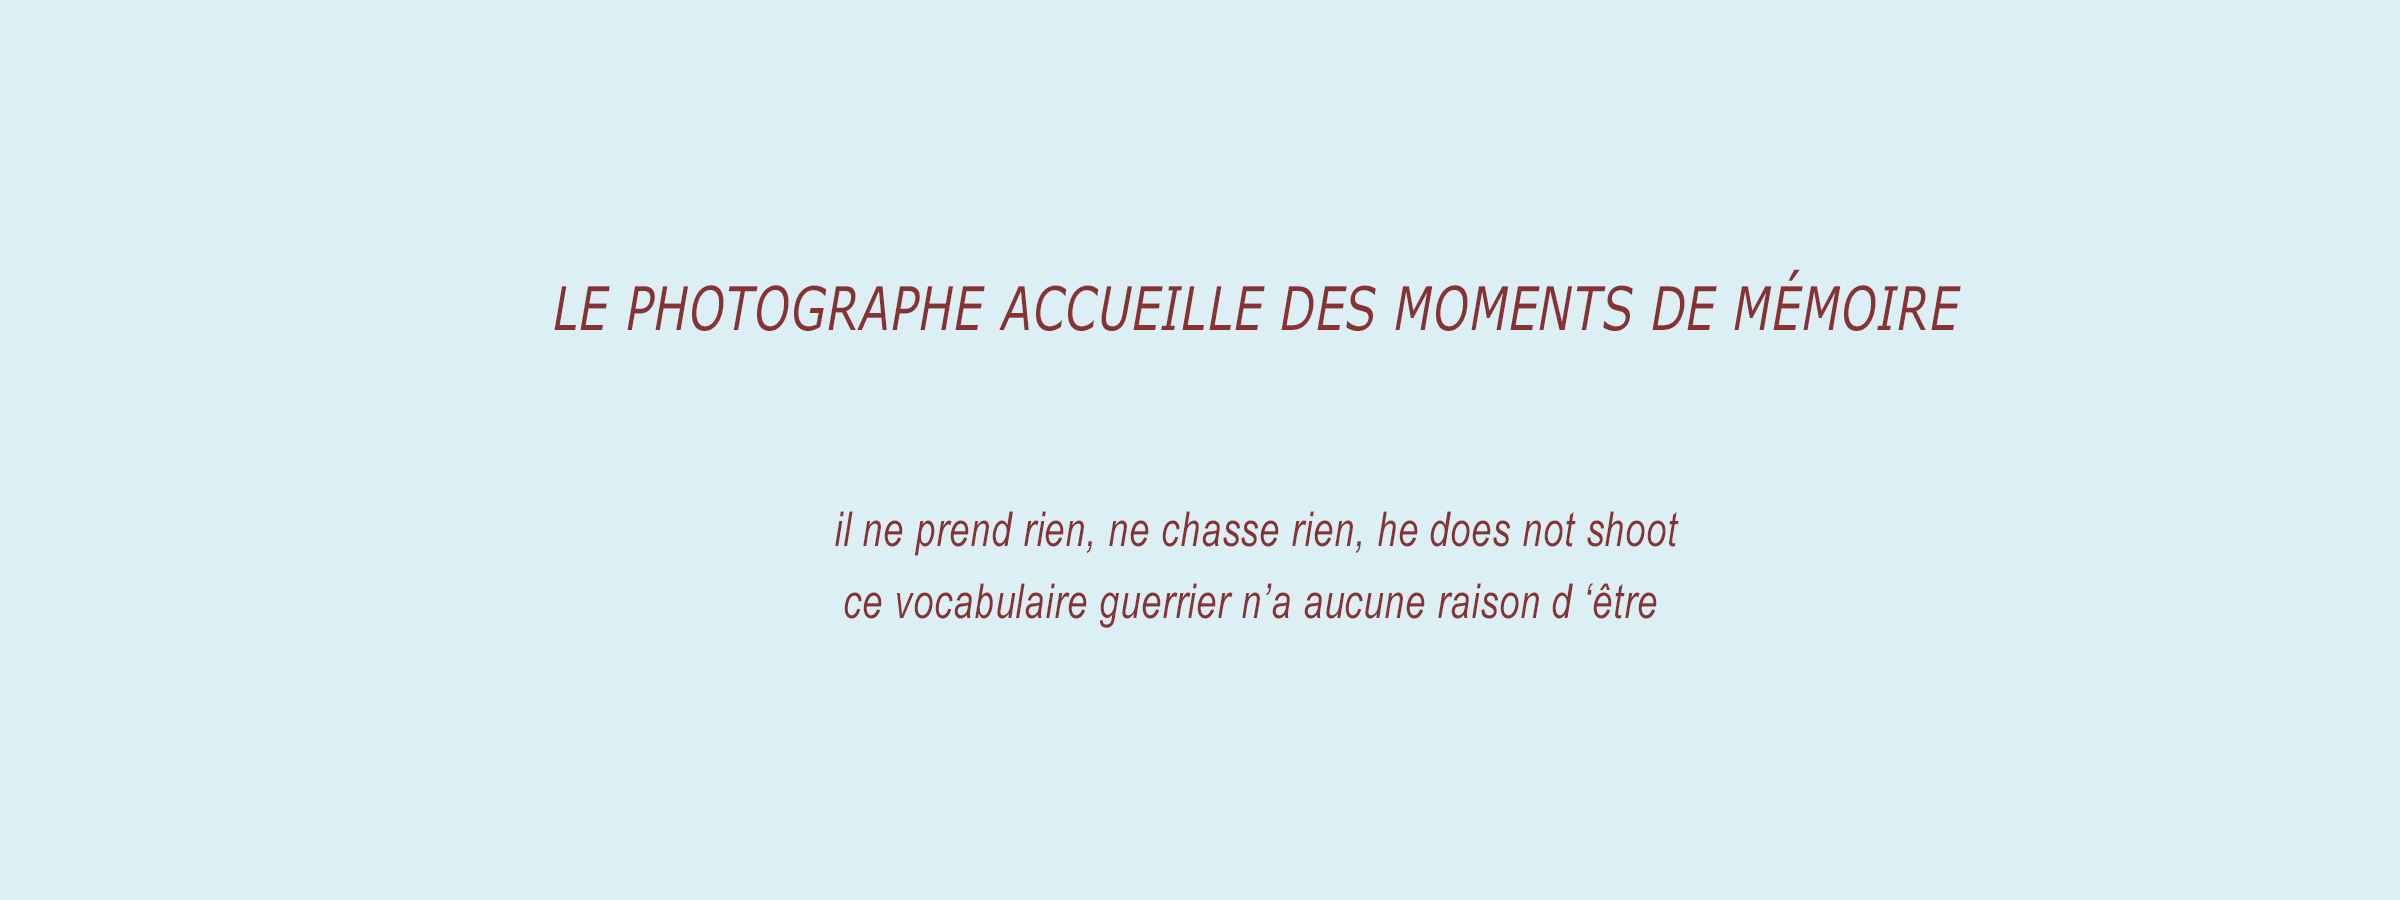 Le-photographe-accueille-des-moments-de-mémoire